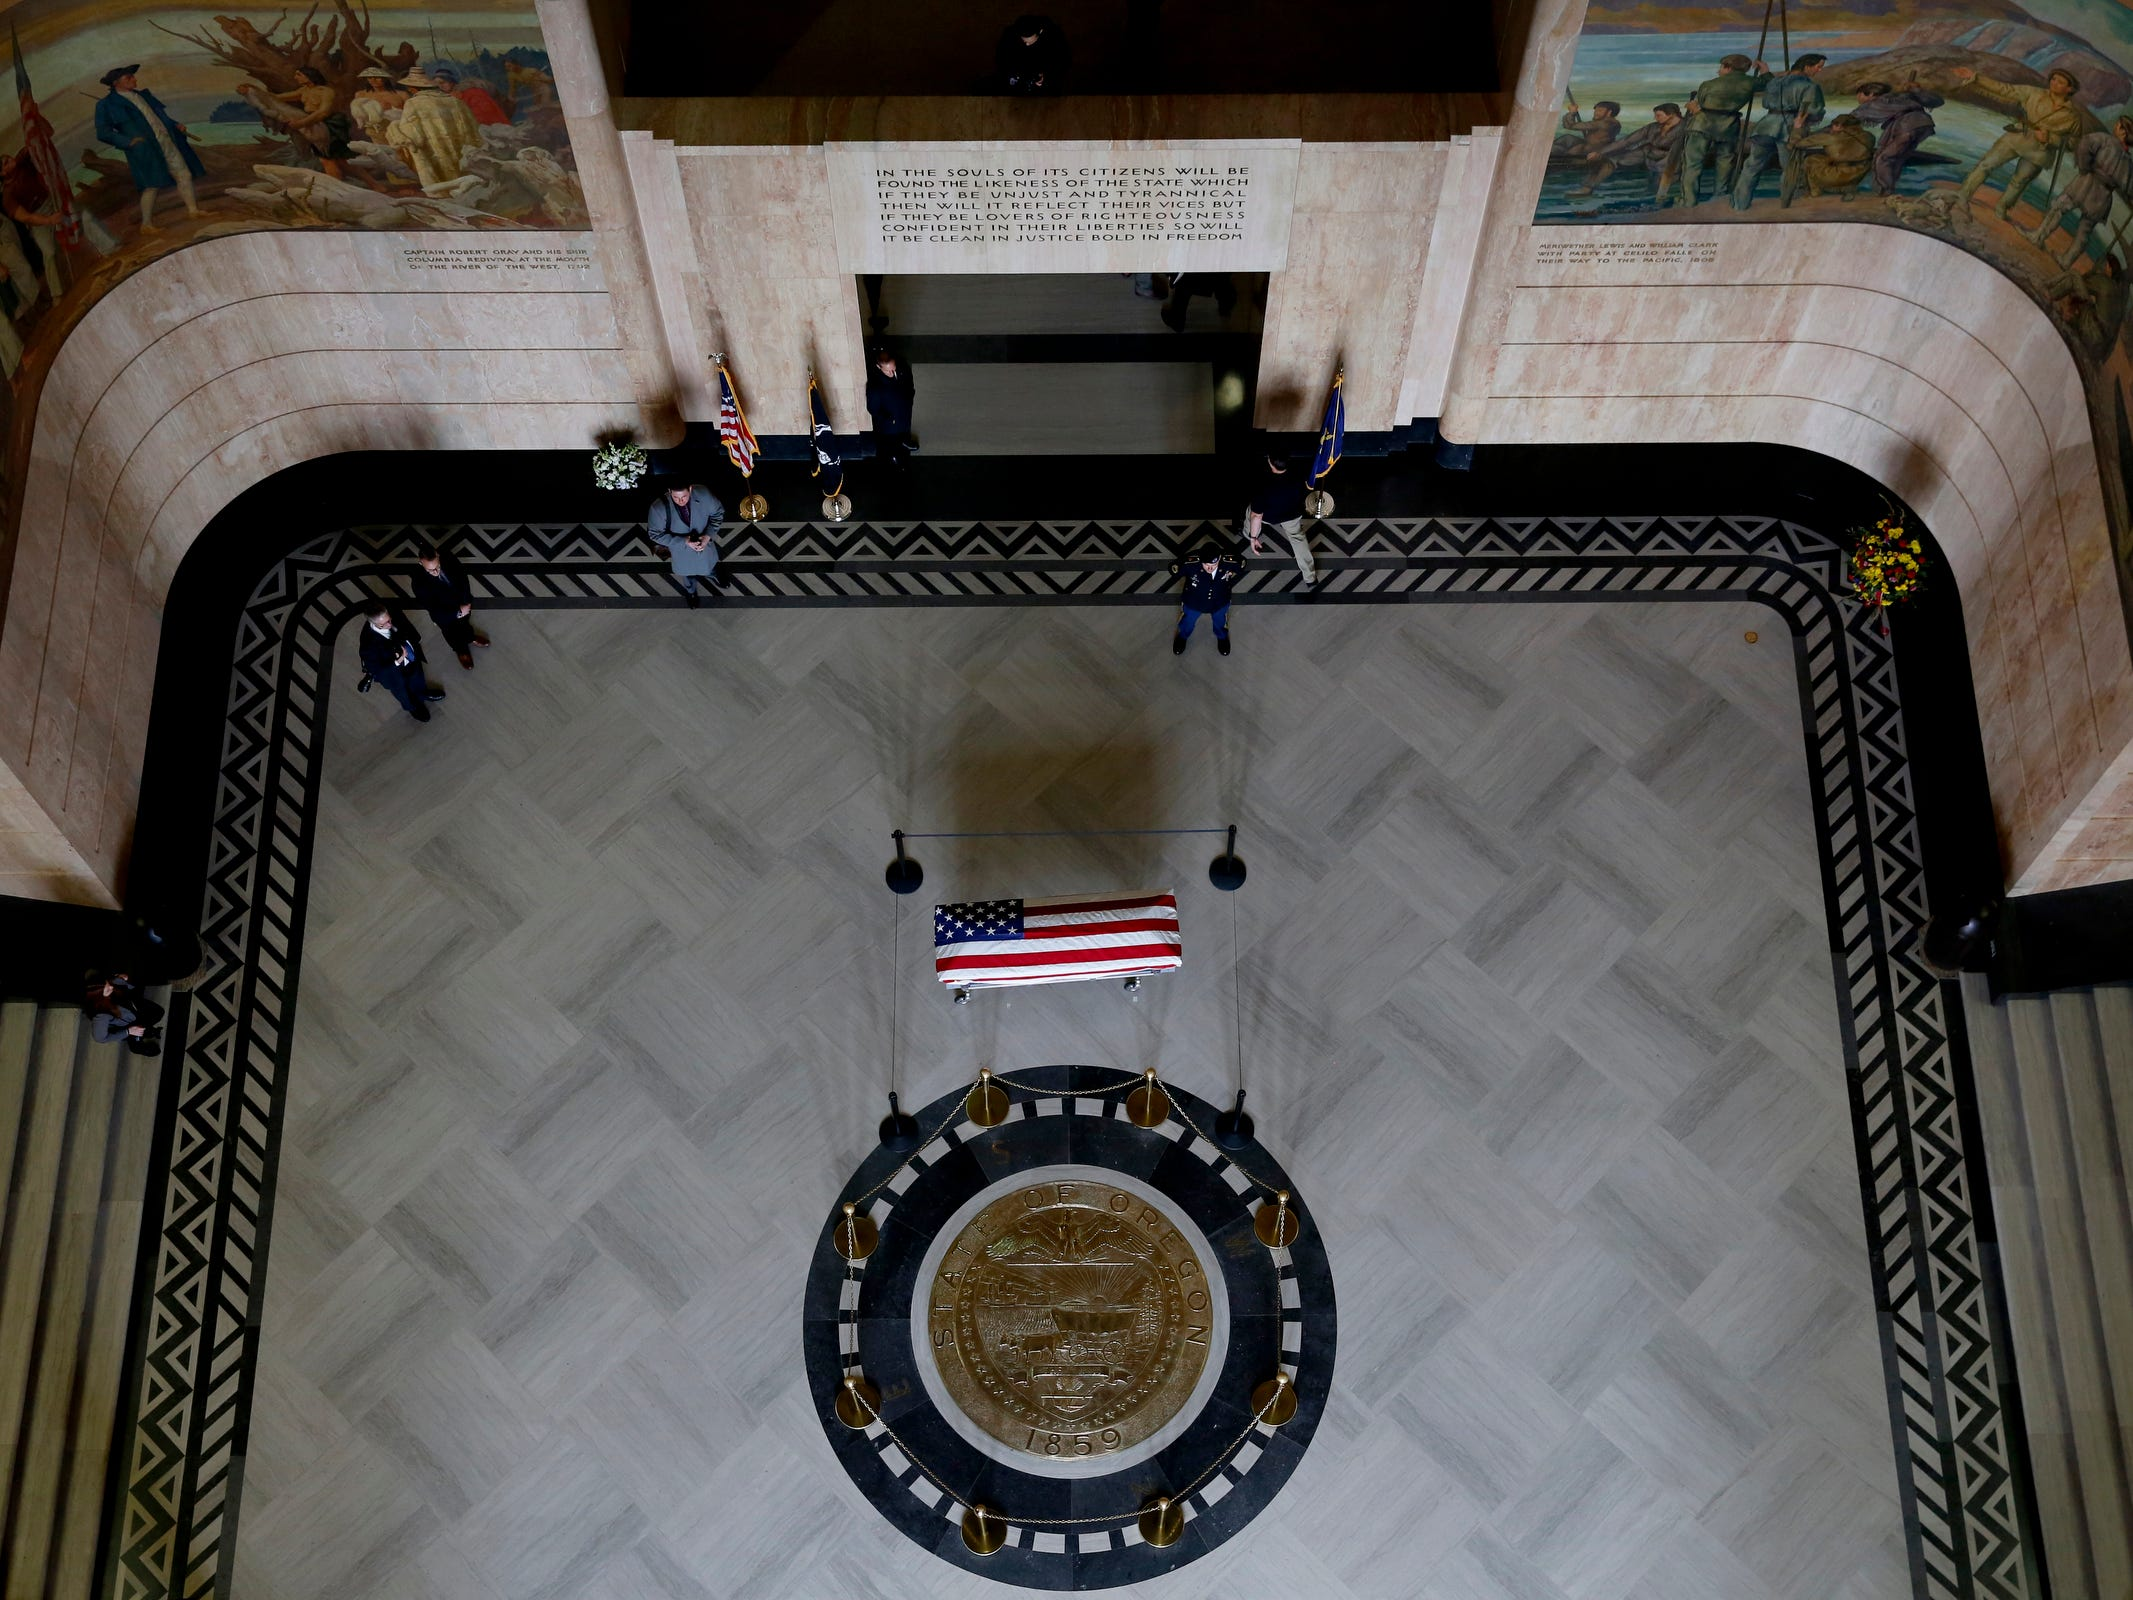 Secretary of State Dennis Richardson lies in state in the rotunda at the Oregon State Capitol in Salem on Wednesday, March 6, 2019.